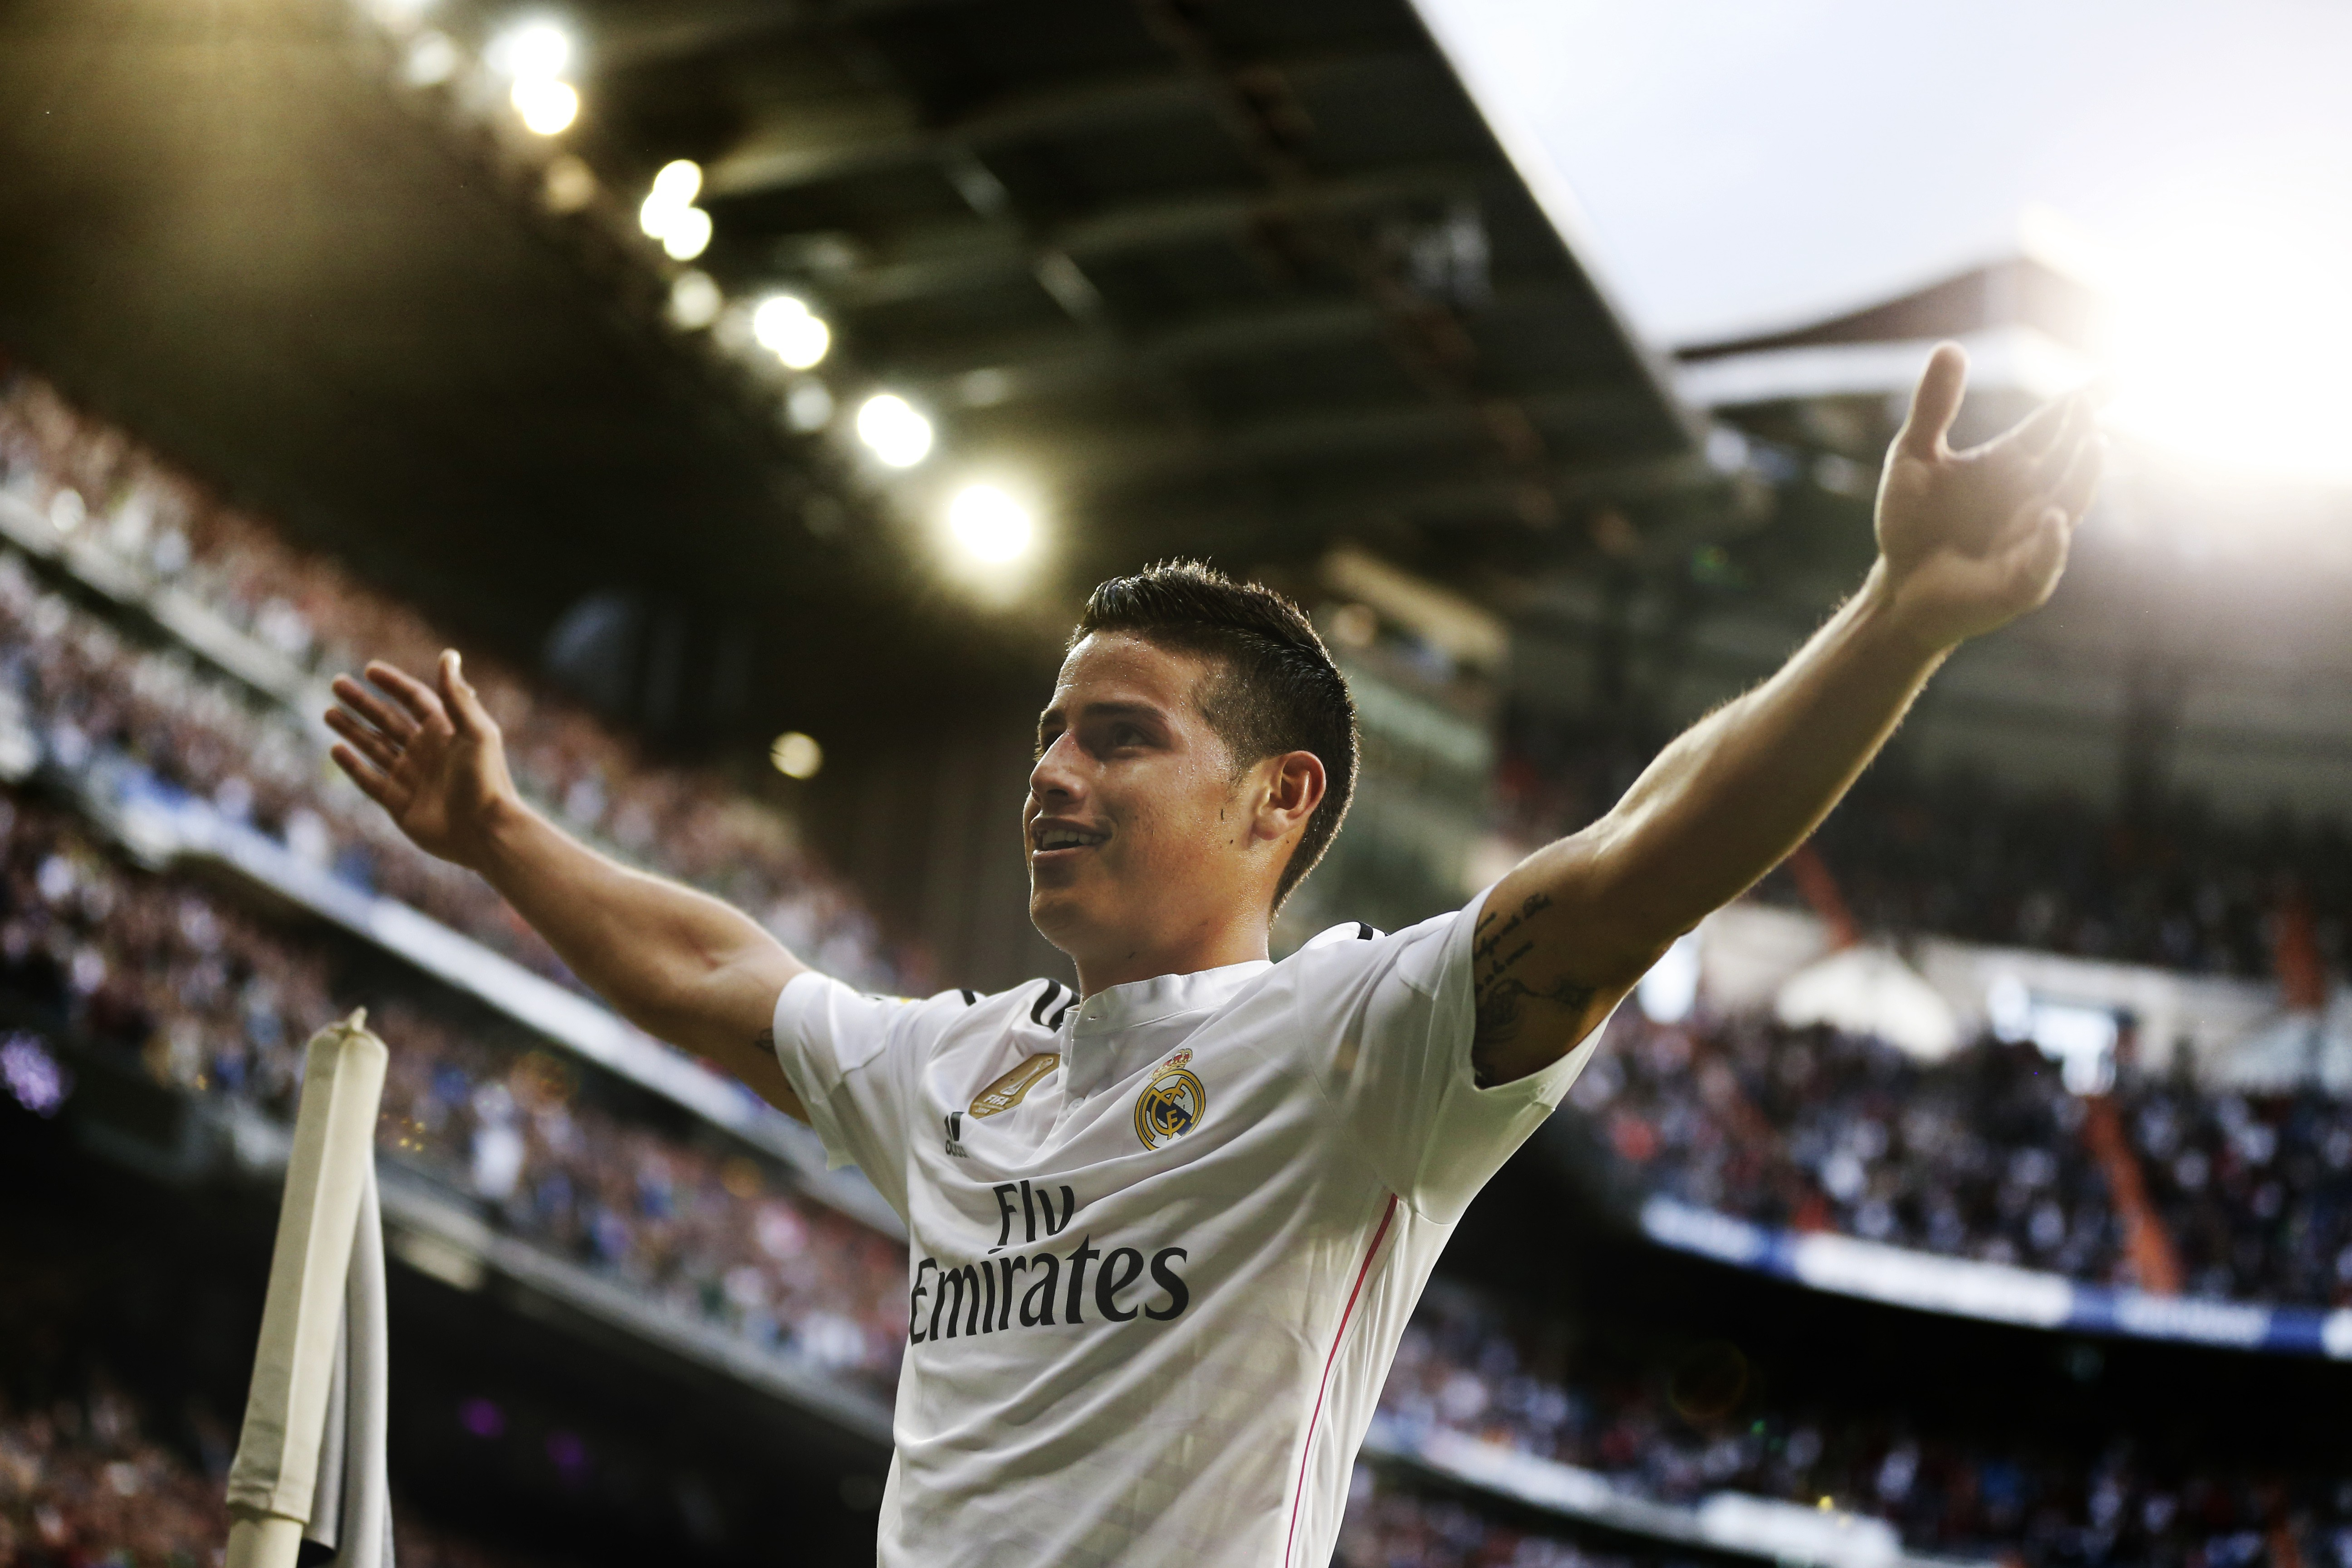 1517 5184x3456 wallpapers retina 5k background images - James rodriguez wallpaper hd ...